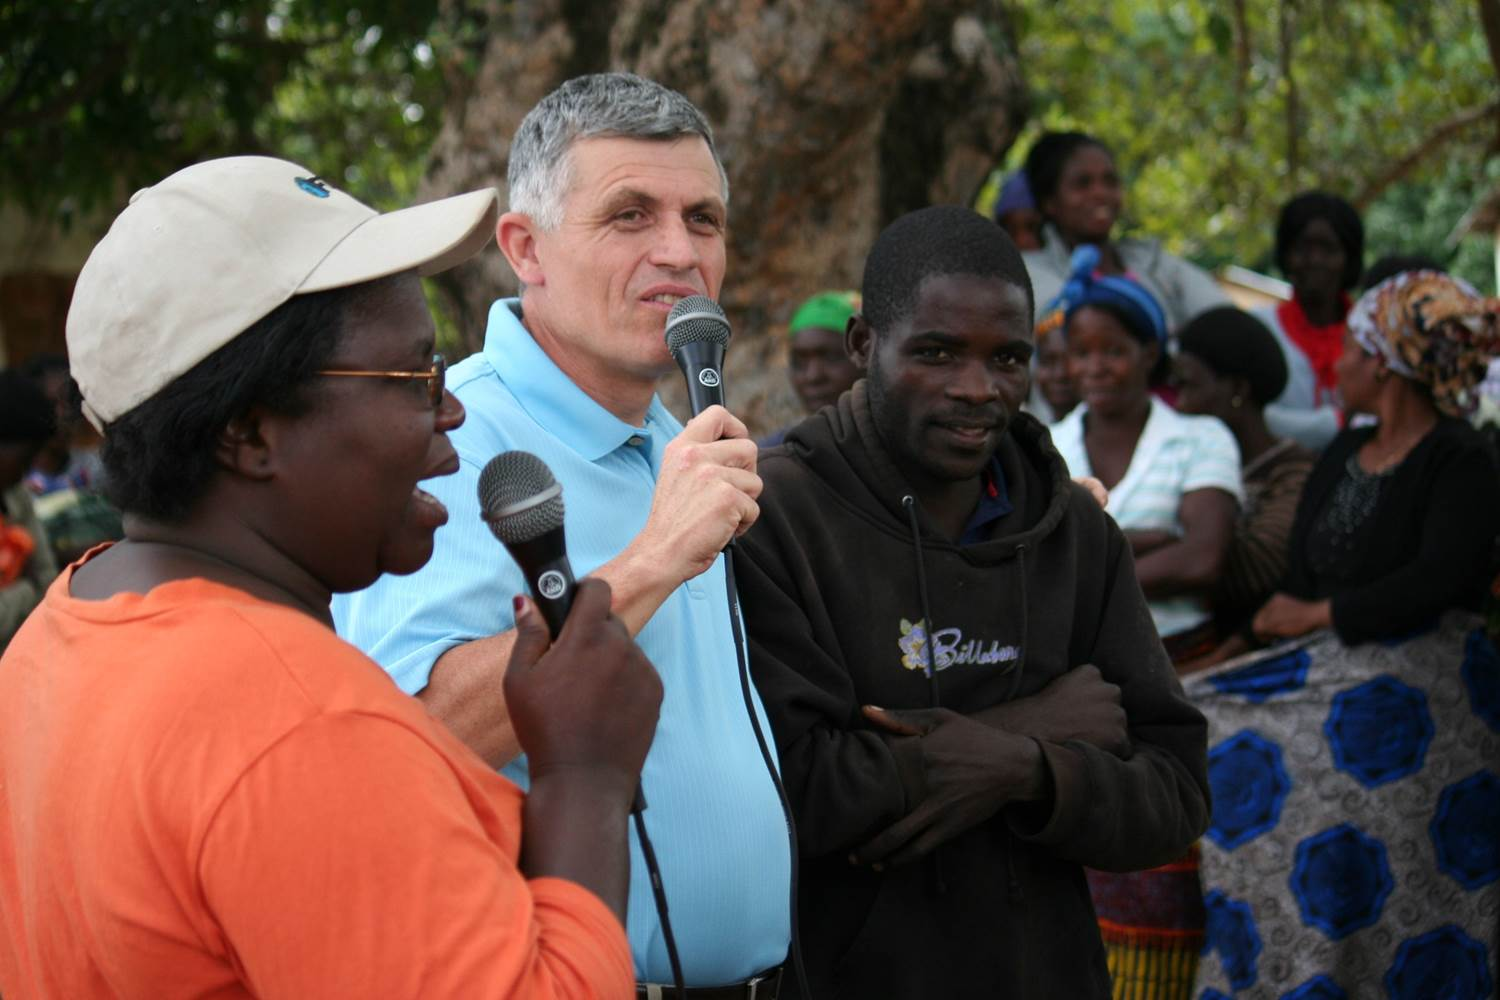 This man was deaf but received healing from Jesus in a crusade in Zambia.